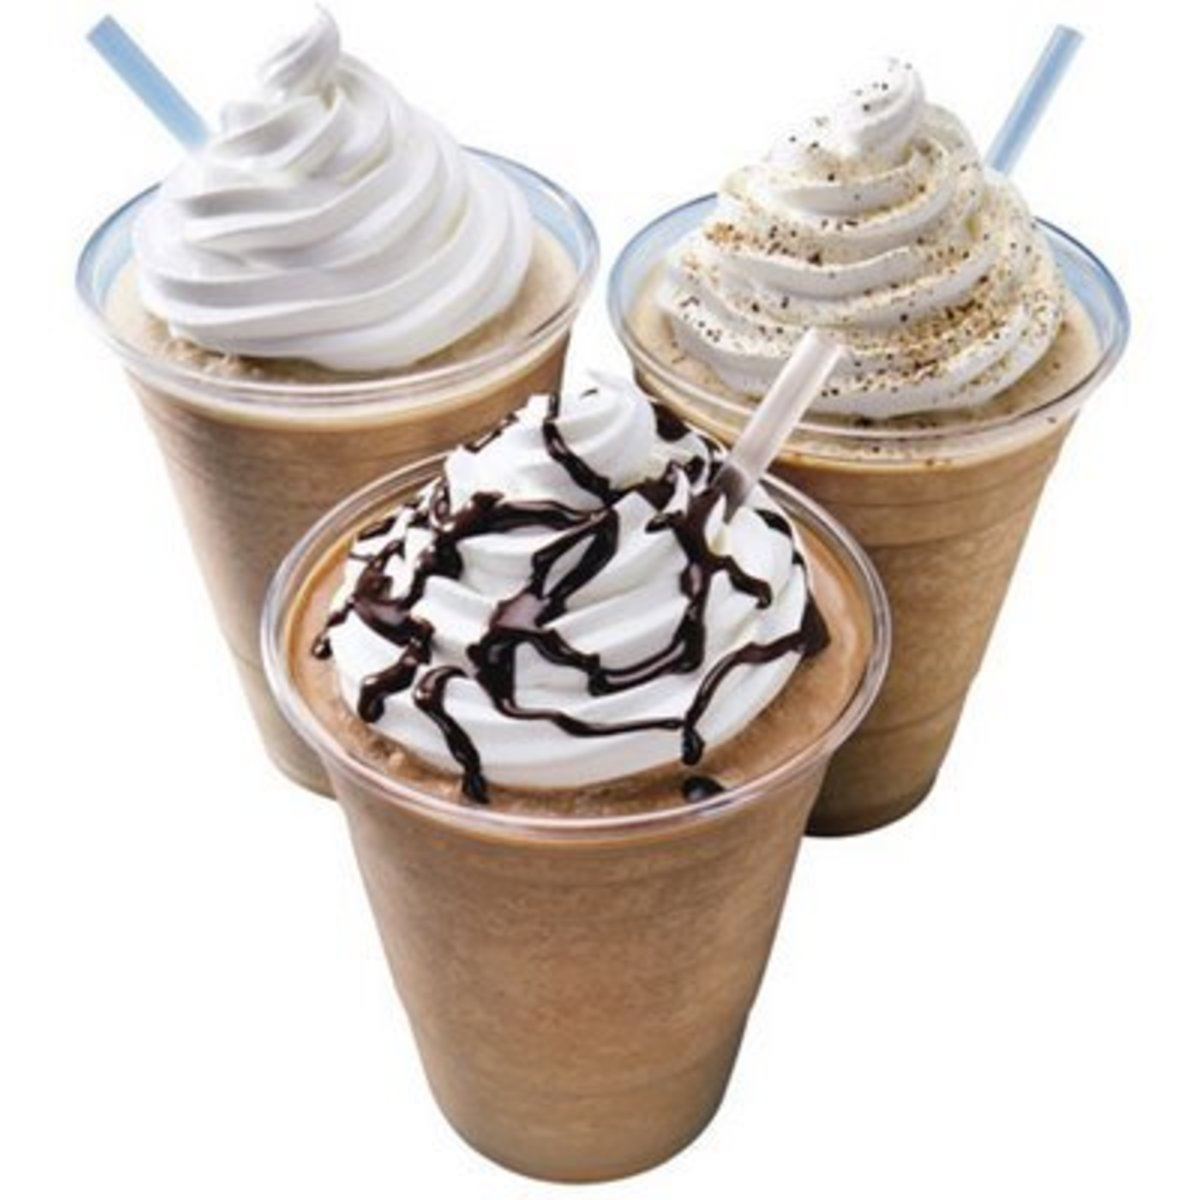 101 of the Best Coffee and Espresso Drinks Part 1